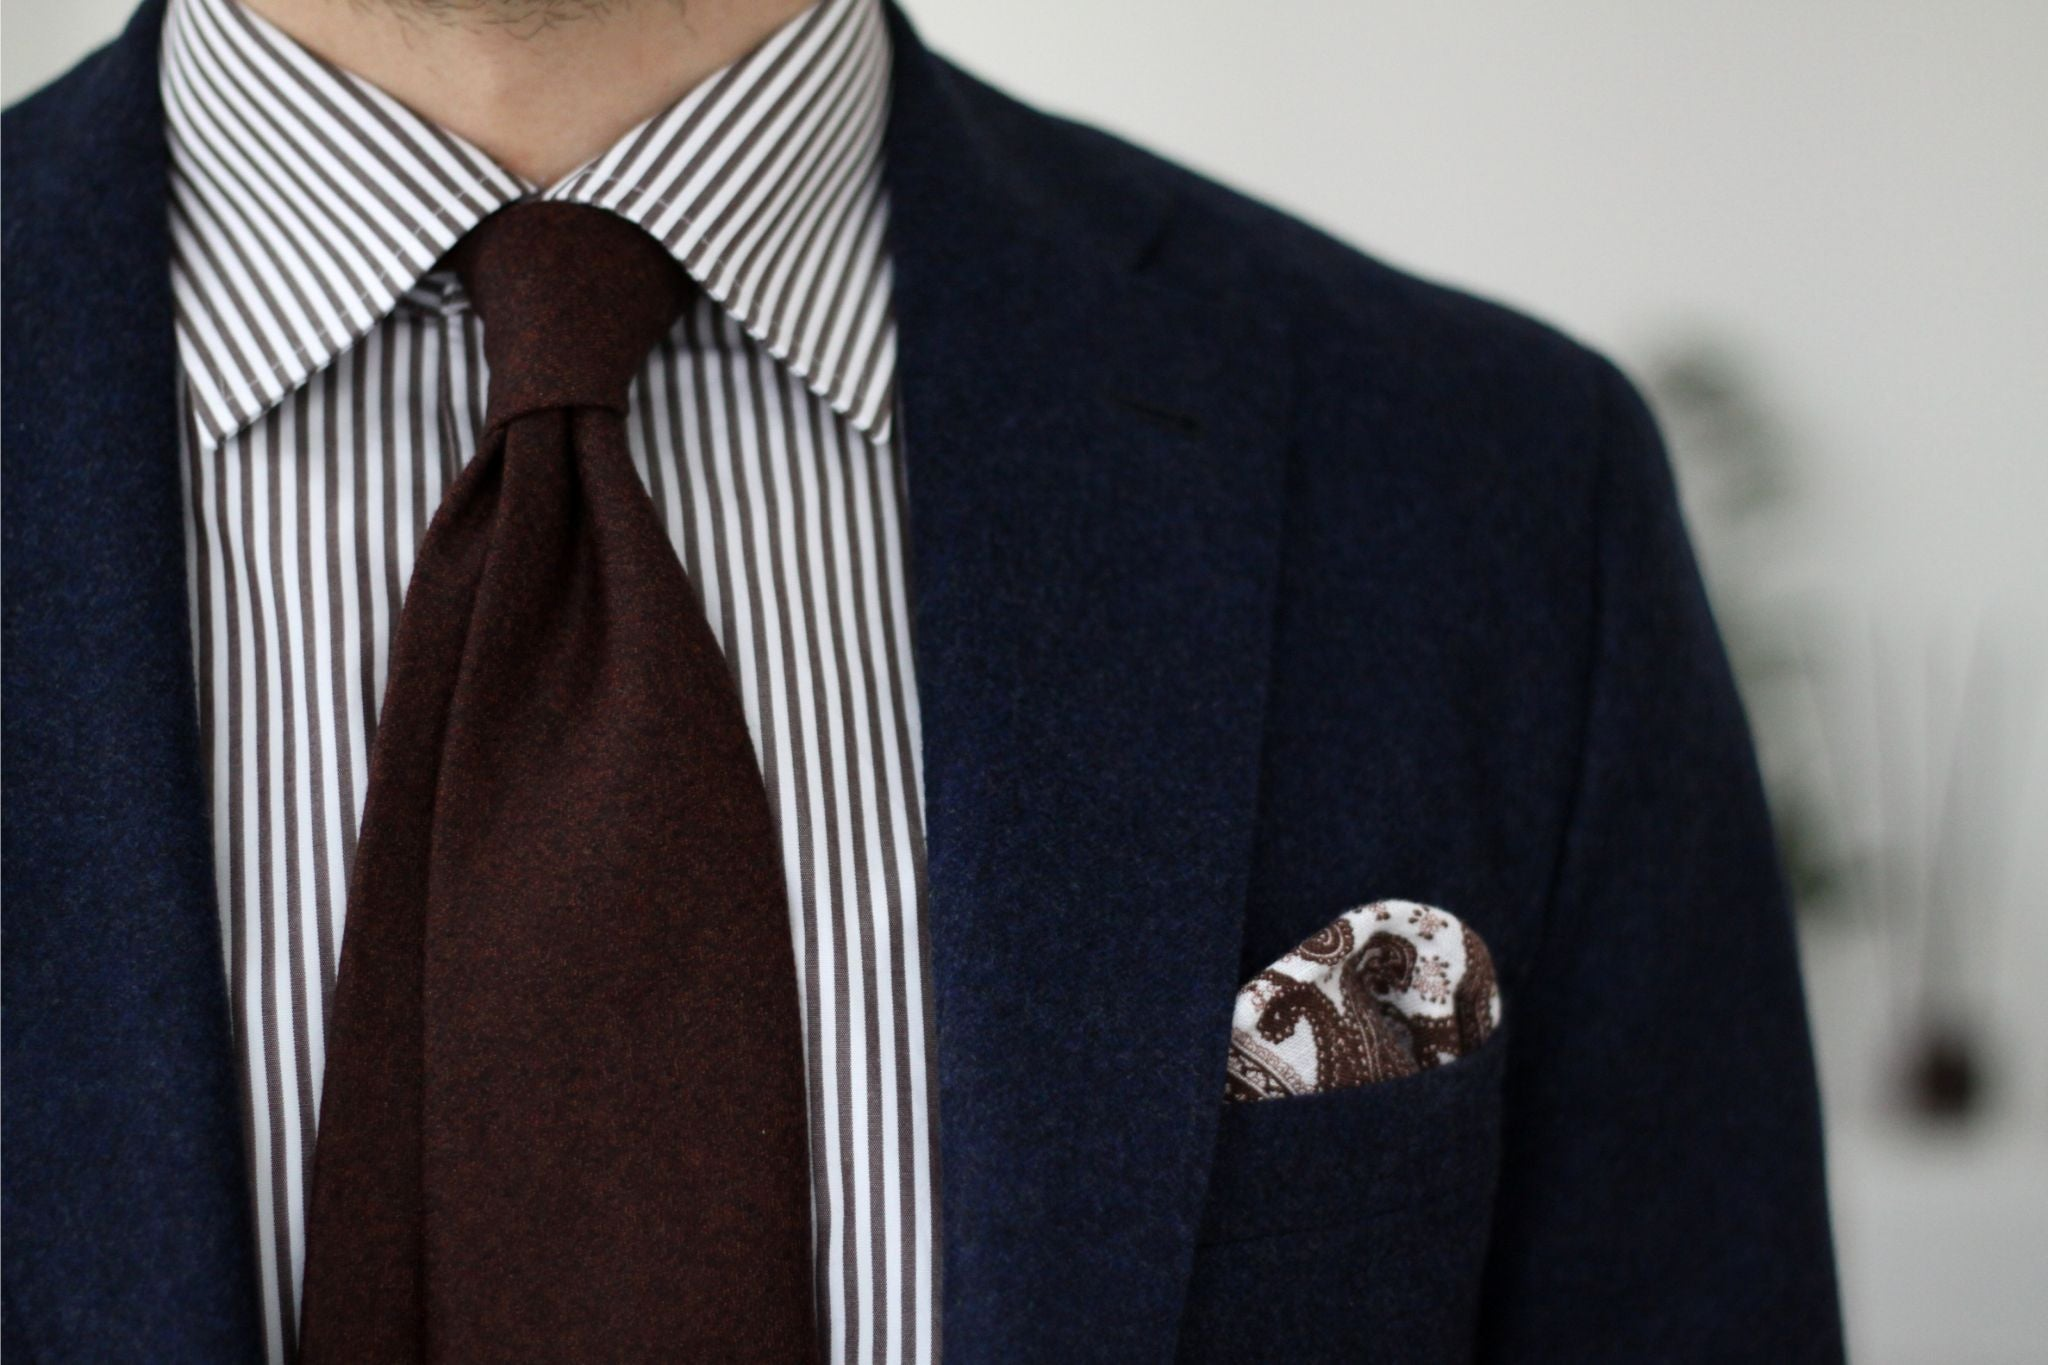 Brown tie with double-four-in-hand knot and dimple